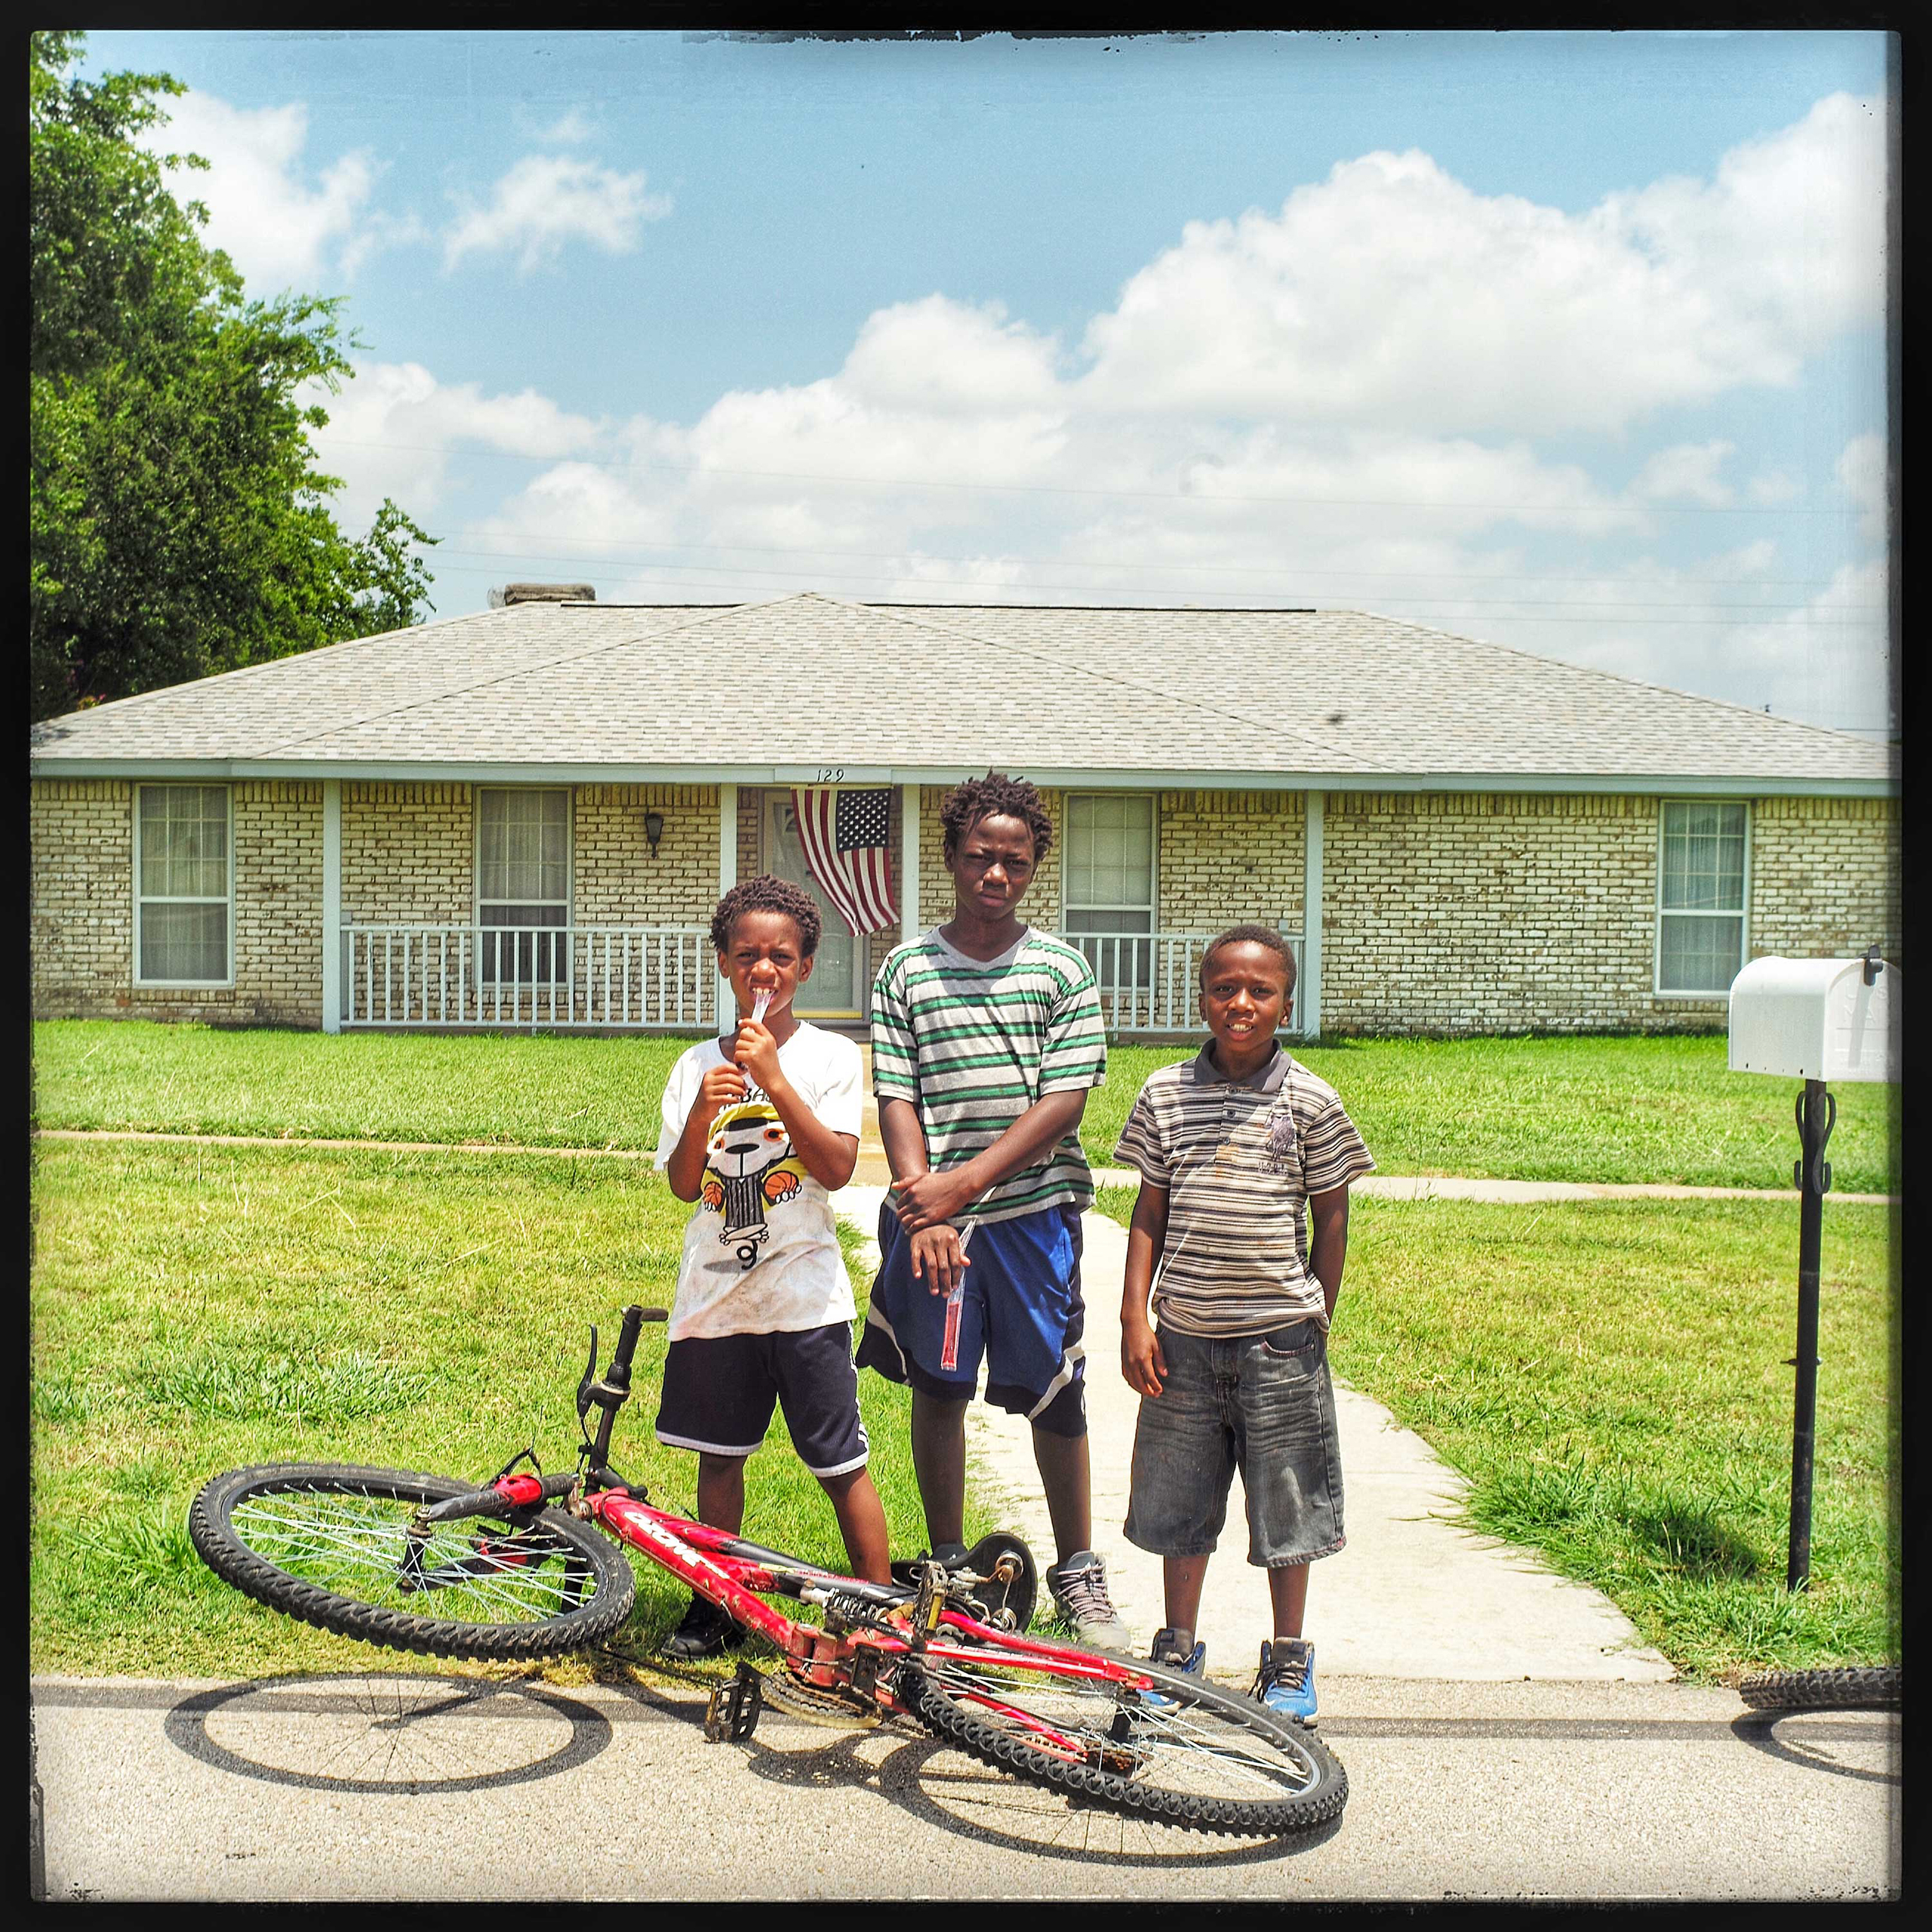 Dallas, Tex: Daylon, Saveon, and Kevon were all riding their bicycles when I stopped them to talk about what was going on in Dallas.                                It's too sad. The police arrest people who don't have a driver's license. They should go after the robbers and killers instead,  Daylon (middle) said.                               Savion (right) said the police should leave guys who sell drugs. They should be able to continue to sell drugs.                                Daylon,  No!!!!!! They should send them to prison for life .. What if the drugs kill people.                                 The place is quiet now,  Kevon (left) added.